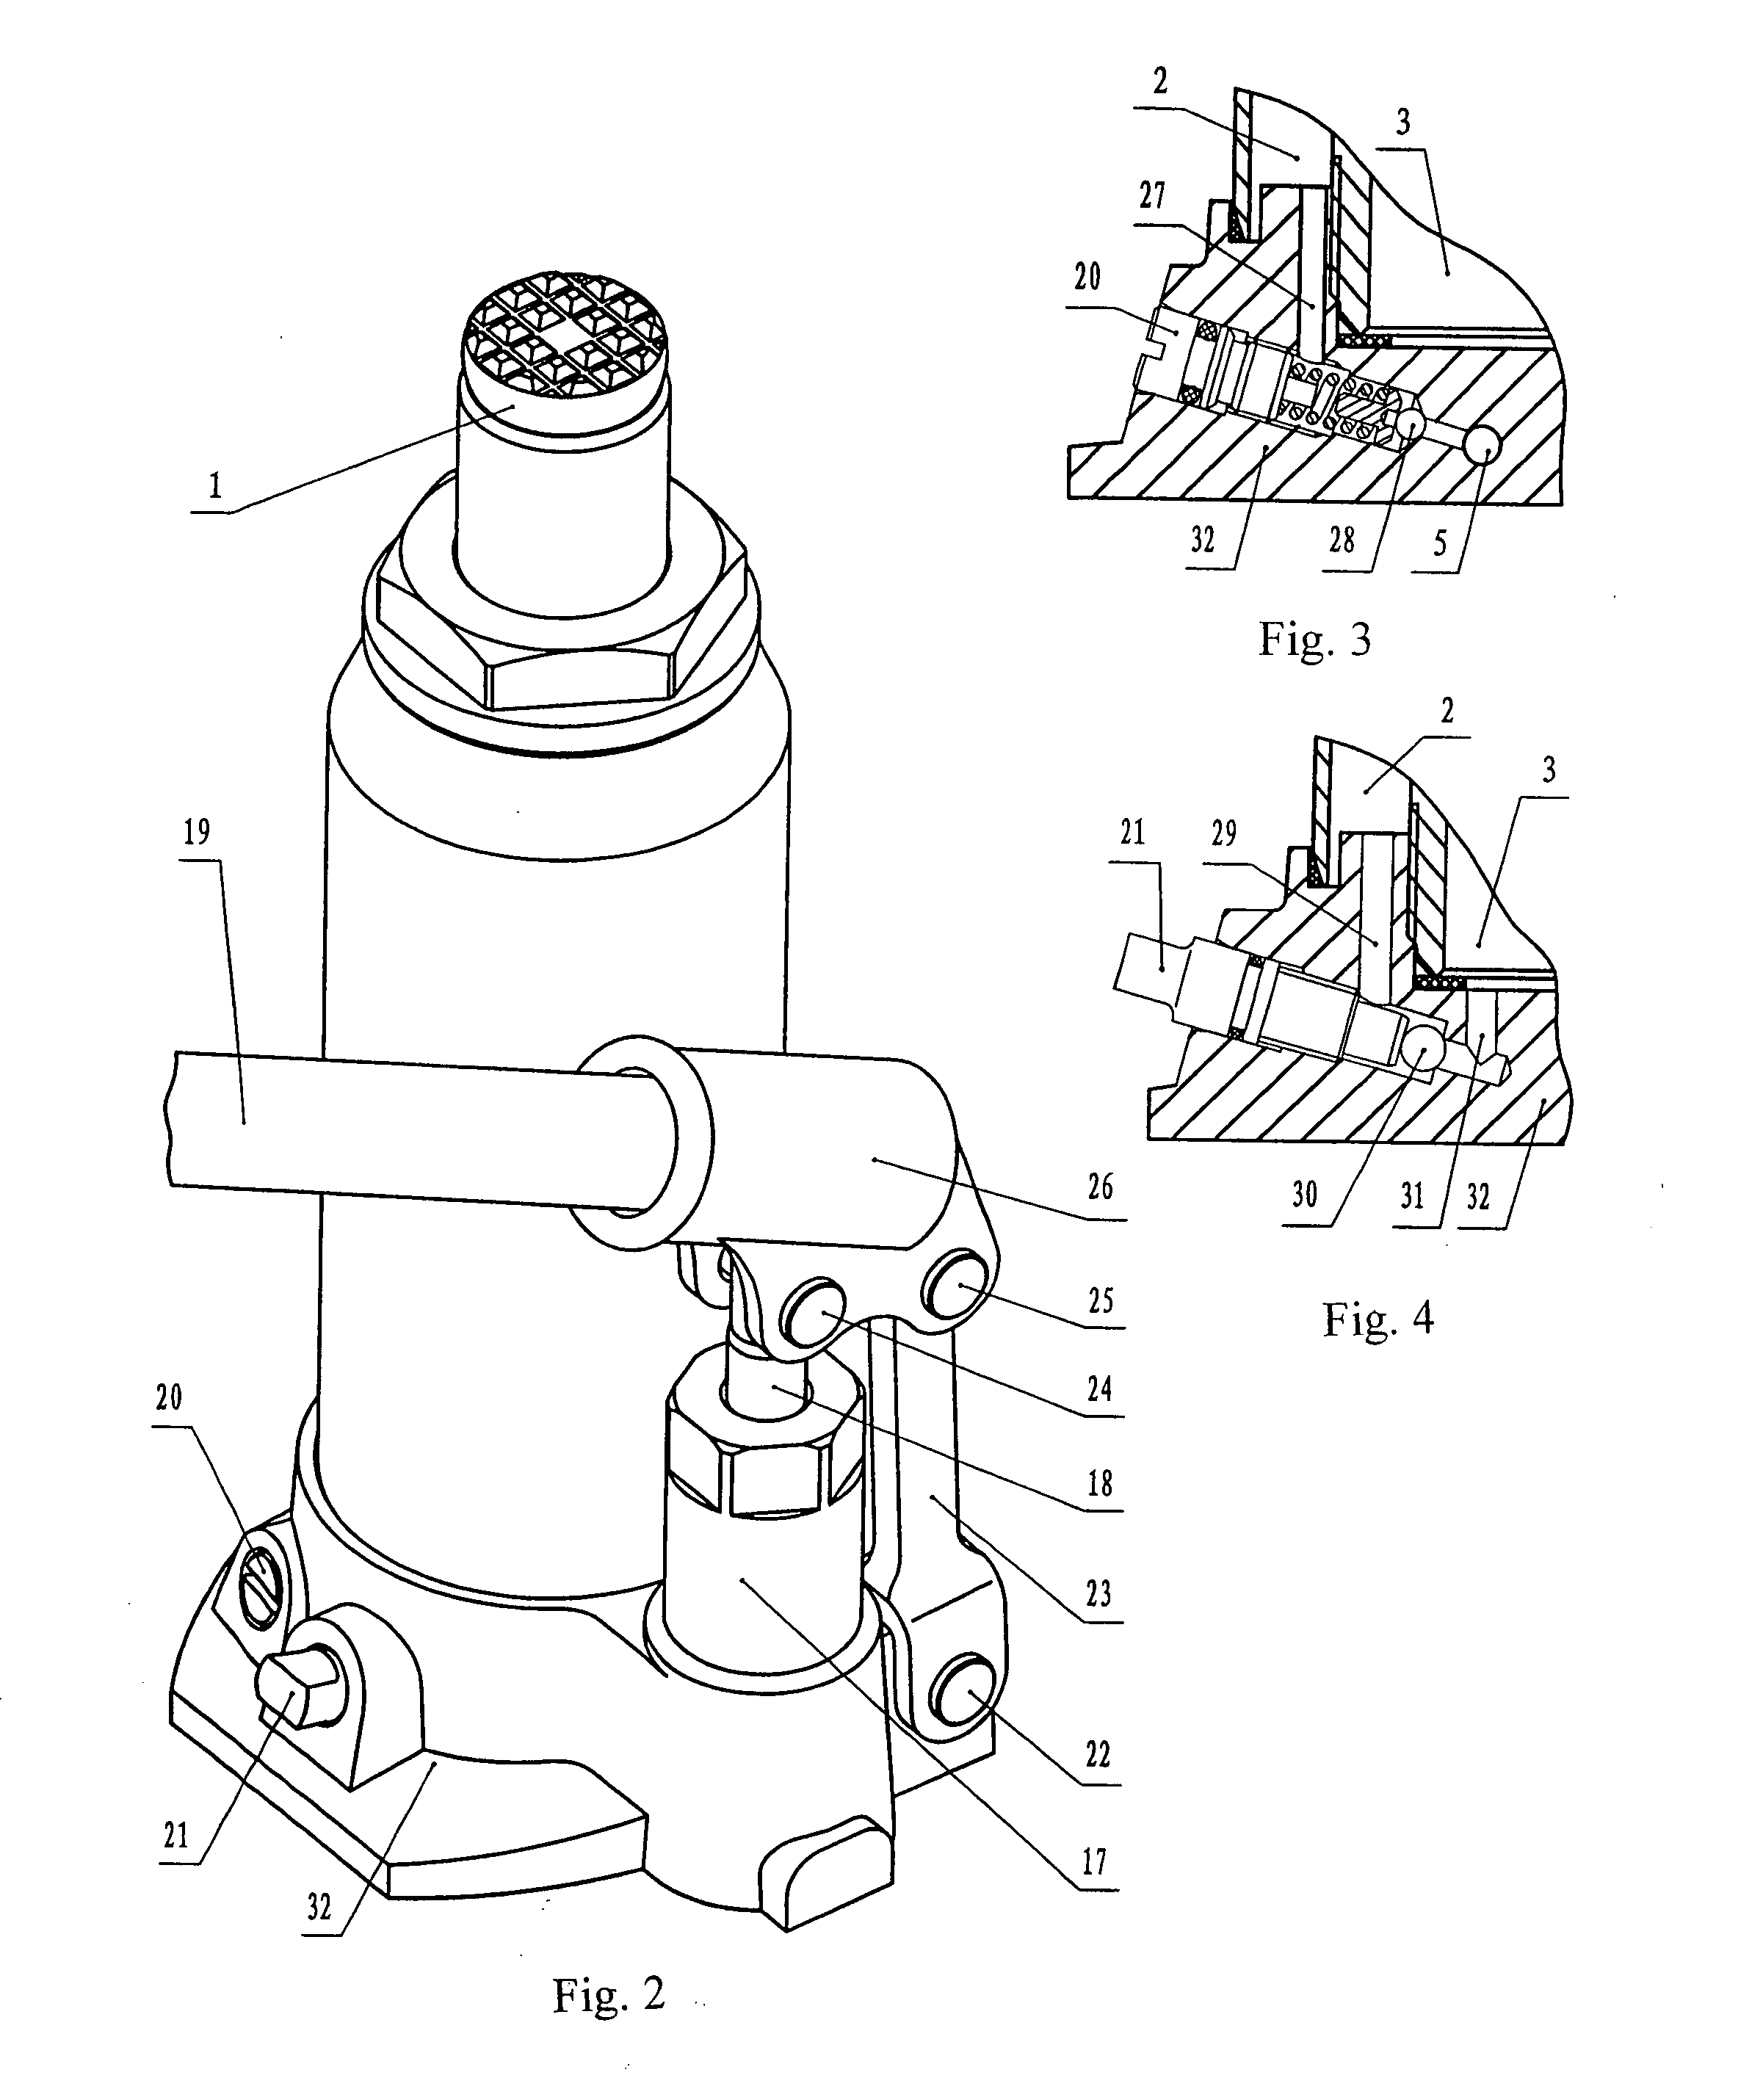 Power Steering Rack additionally Closed Center Spool Valve also SteamEngineParts moreover Motors as well Ford 4000 Tractor Electrical Diagram. on hydraulic piston pump